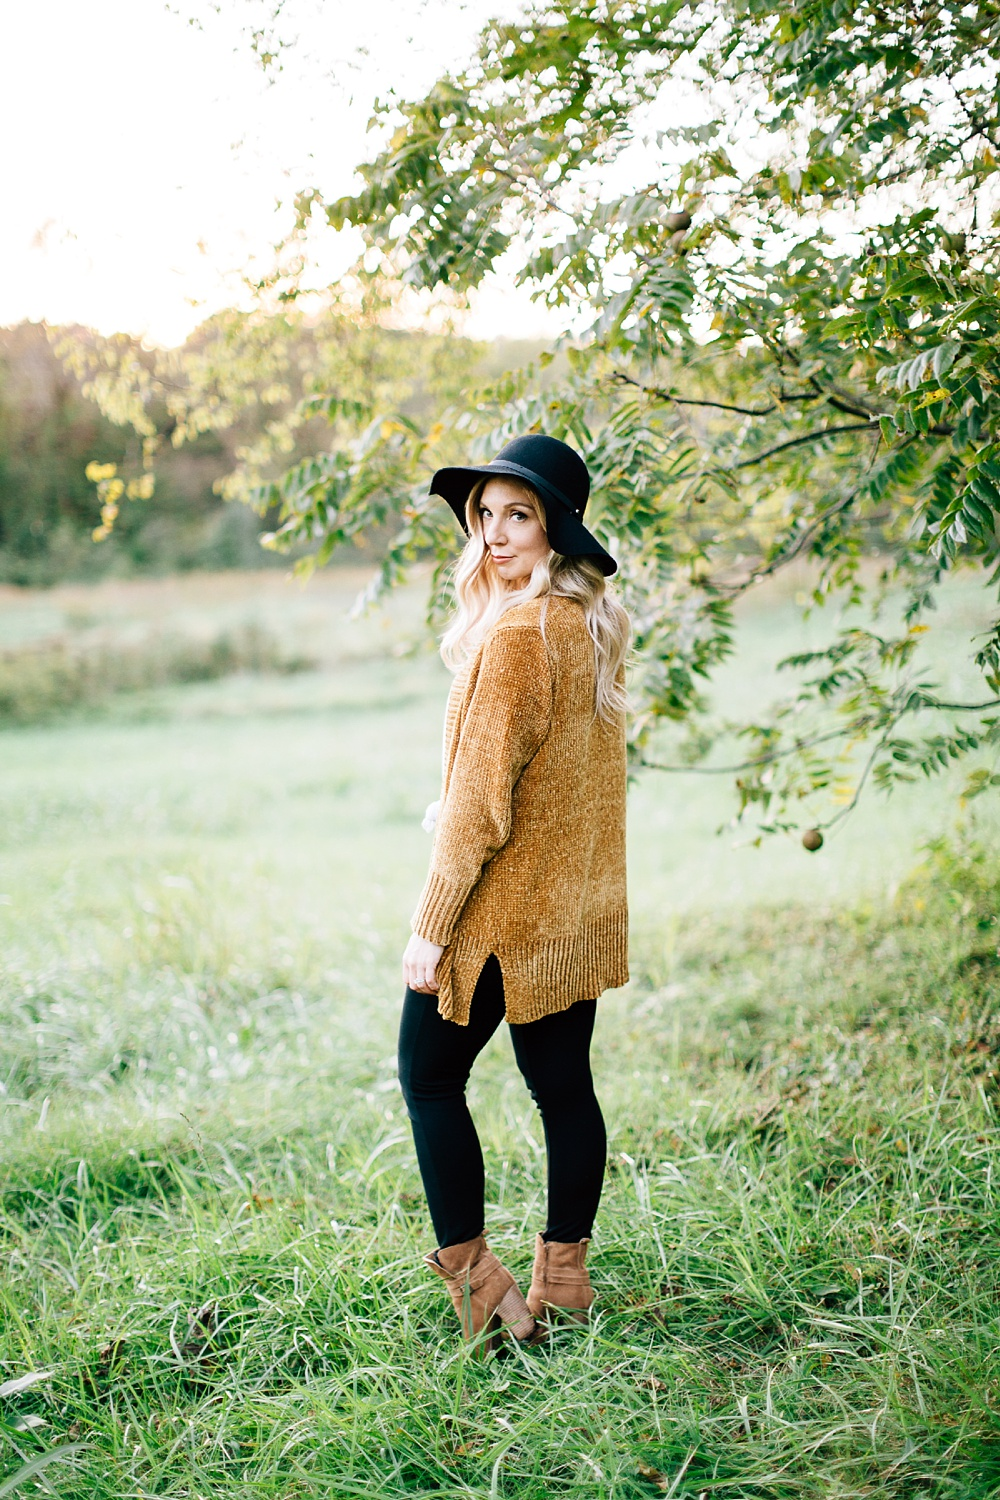 fall portrait session at merritt's pasture by rachael bowman photography